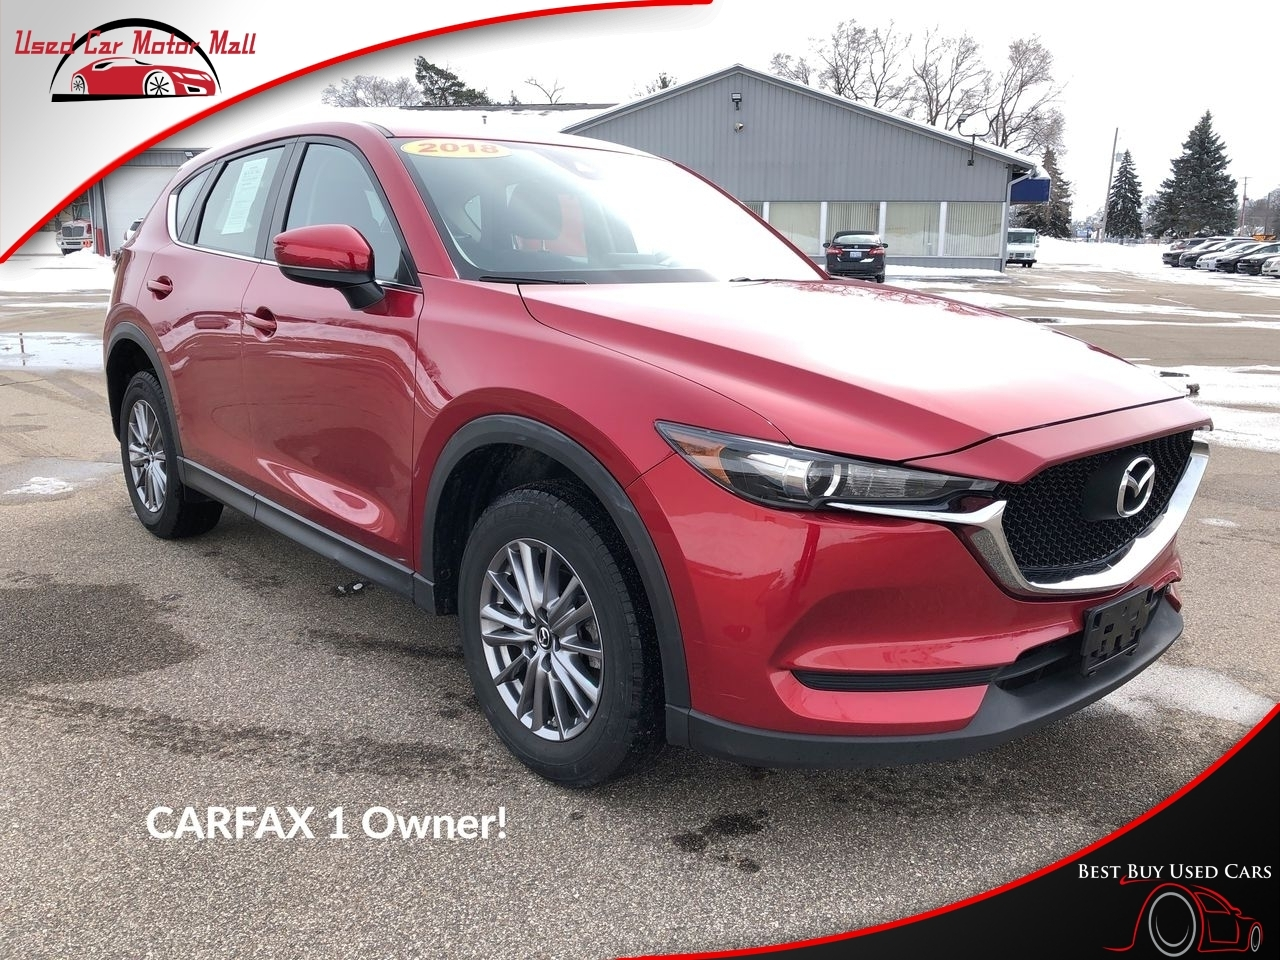 2017 Mazda CX-5 Grand Touring AWD, 211800, Photo 1